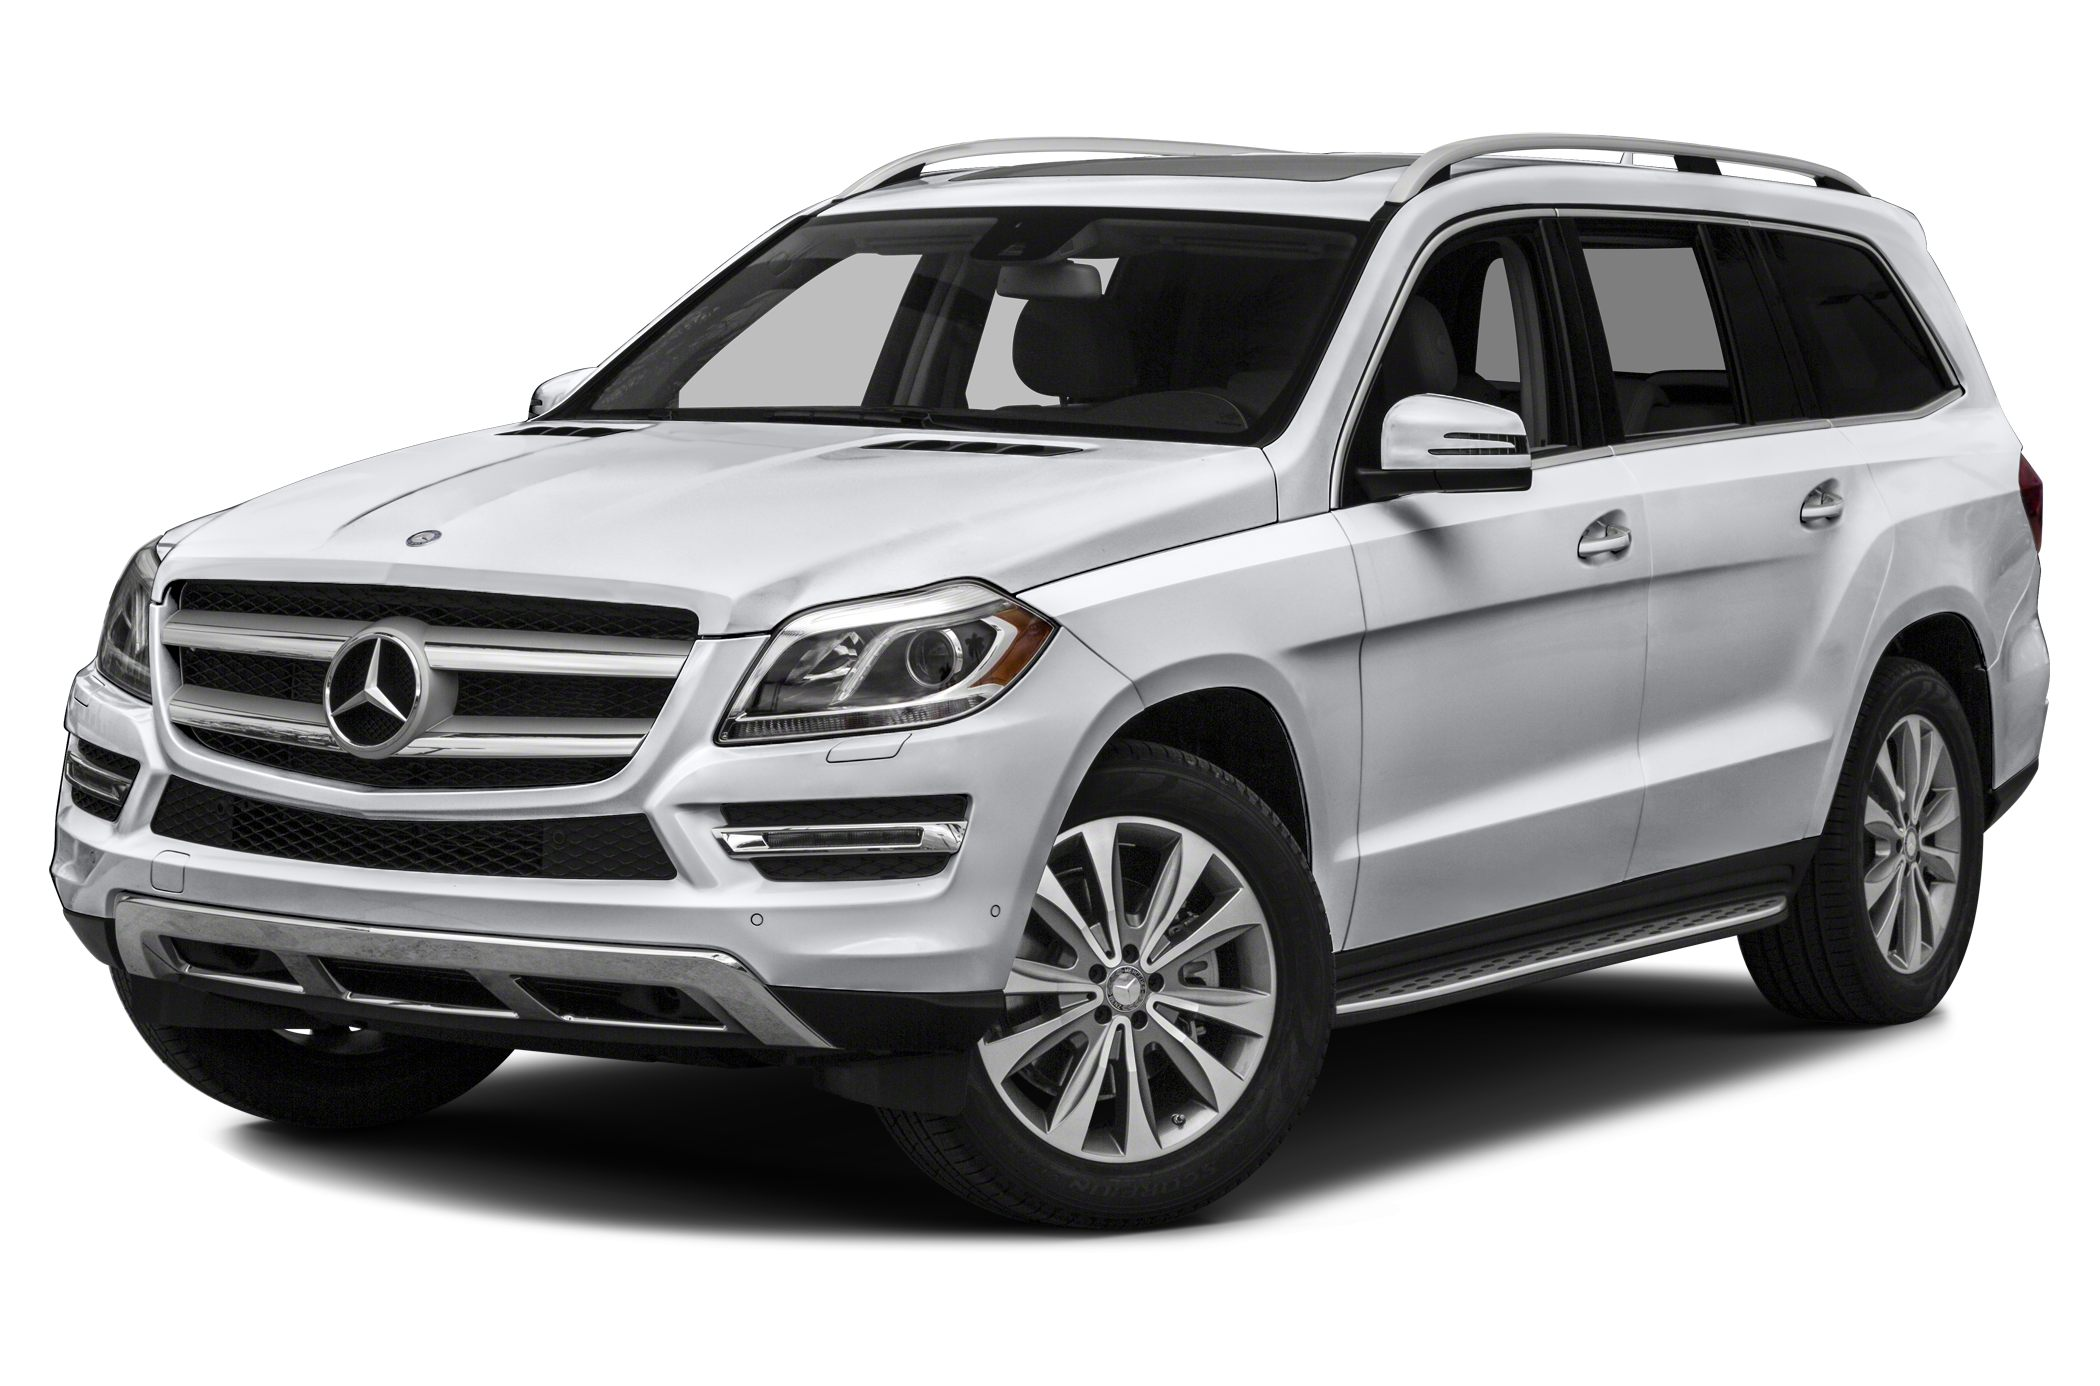 Used Cars for Sale In Pennsylvania Beautiful New and Used Cars for Sale In Middletown Pa